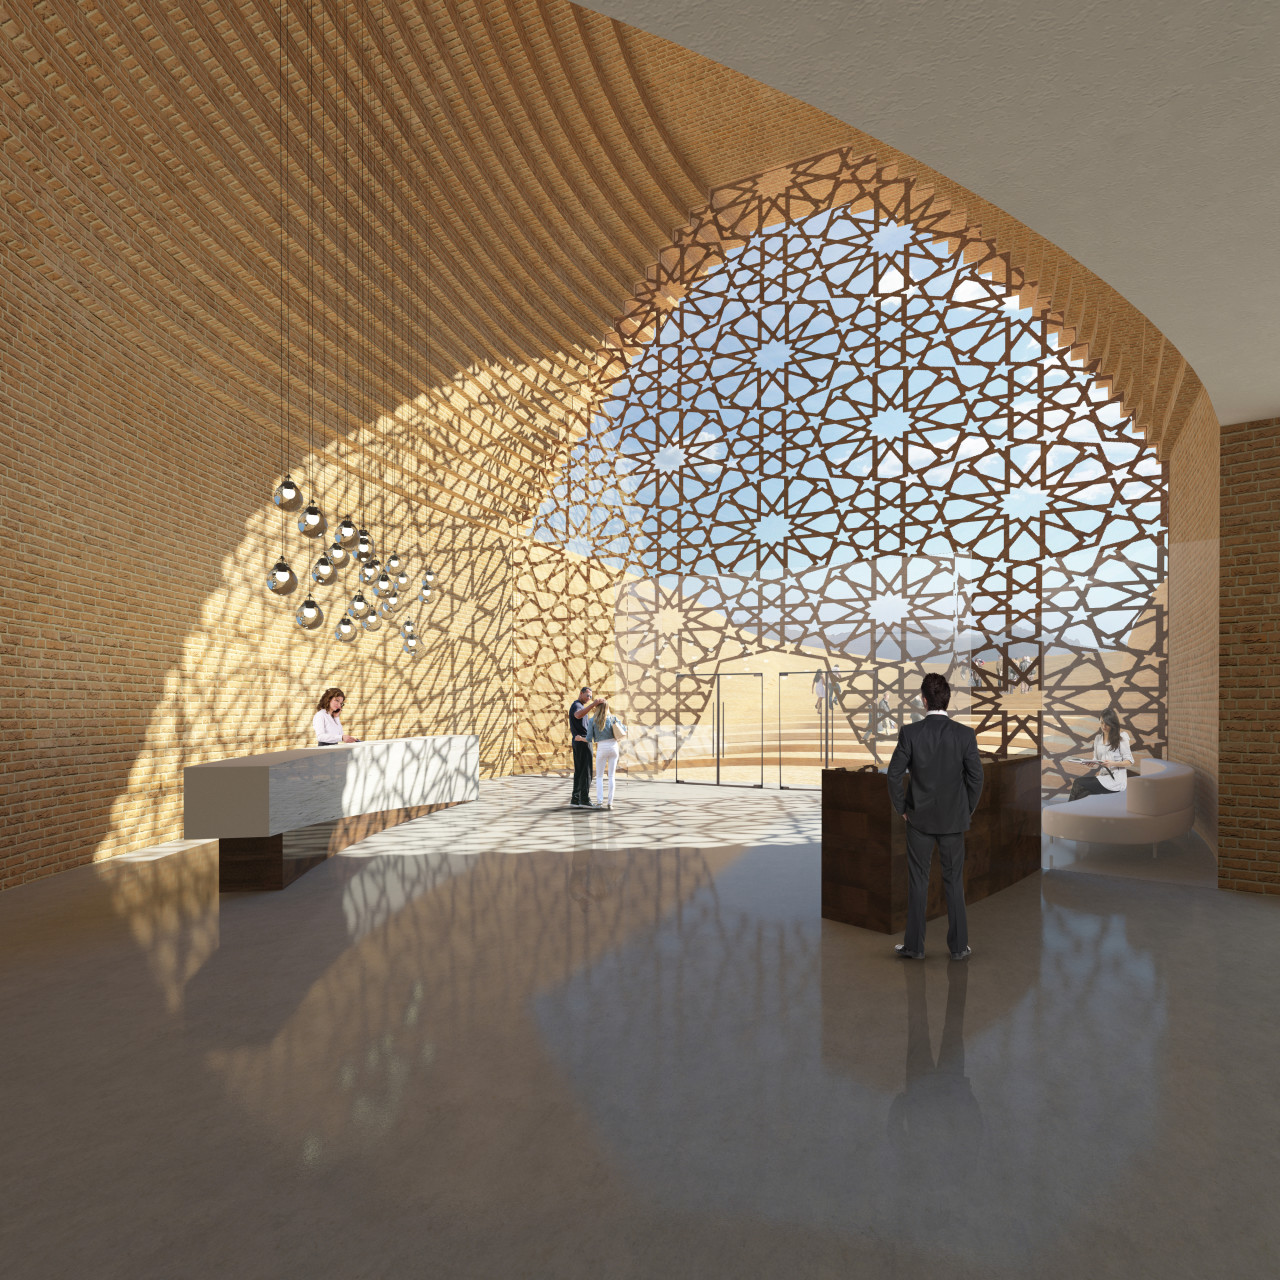 Wisp-Architects-Bamiyan-Cultural-Center-Competition-Render 3